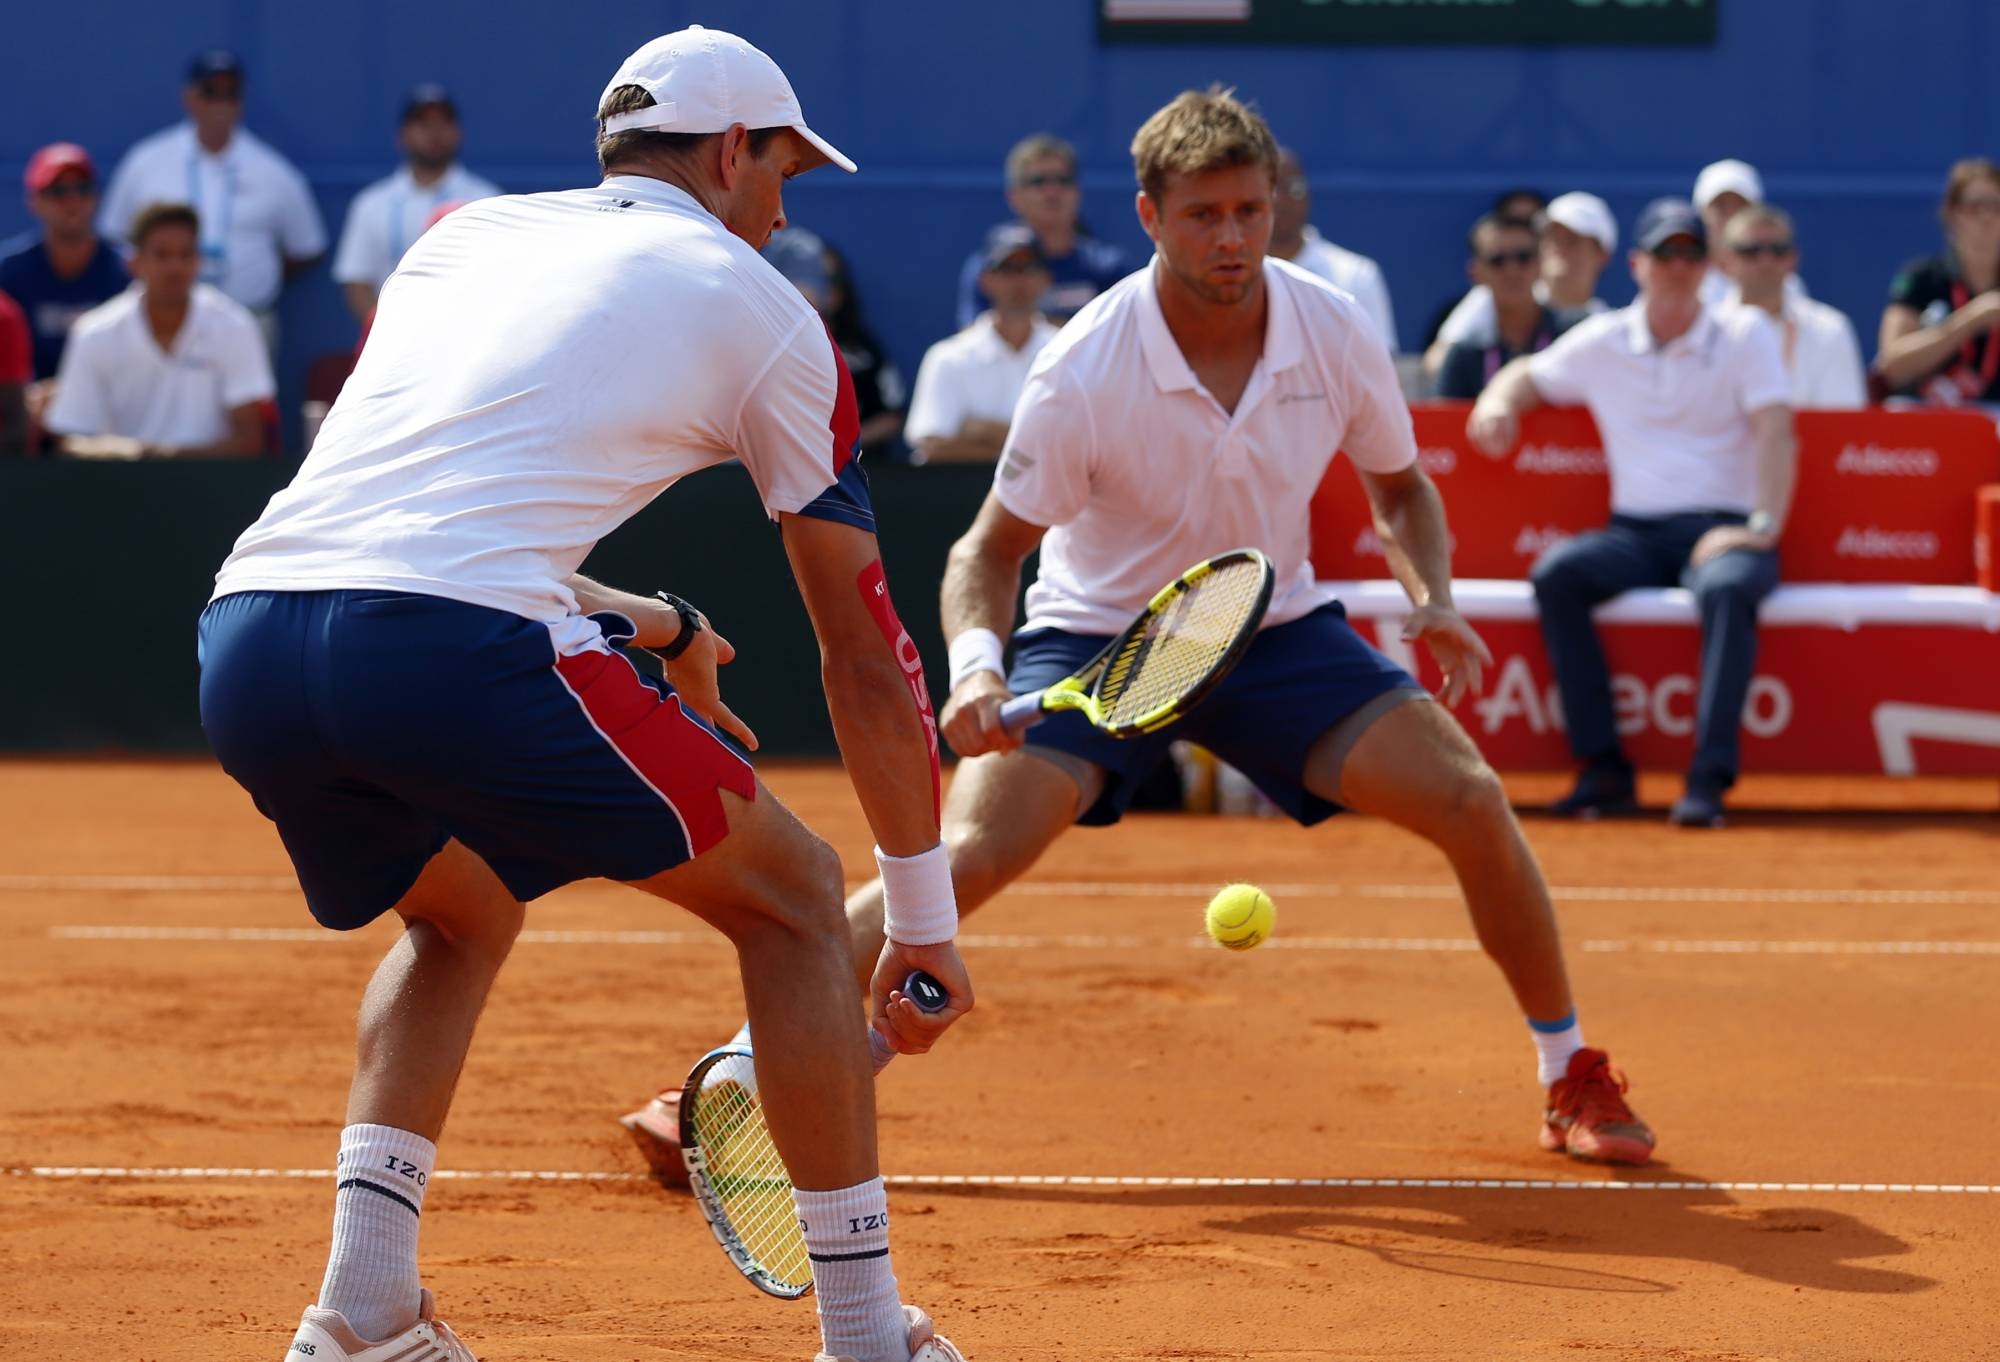 Davis Cup roundup: U.S. survives vs. Croatia, France clinches